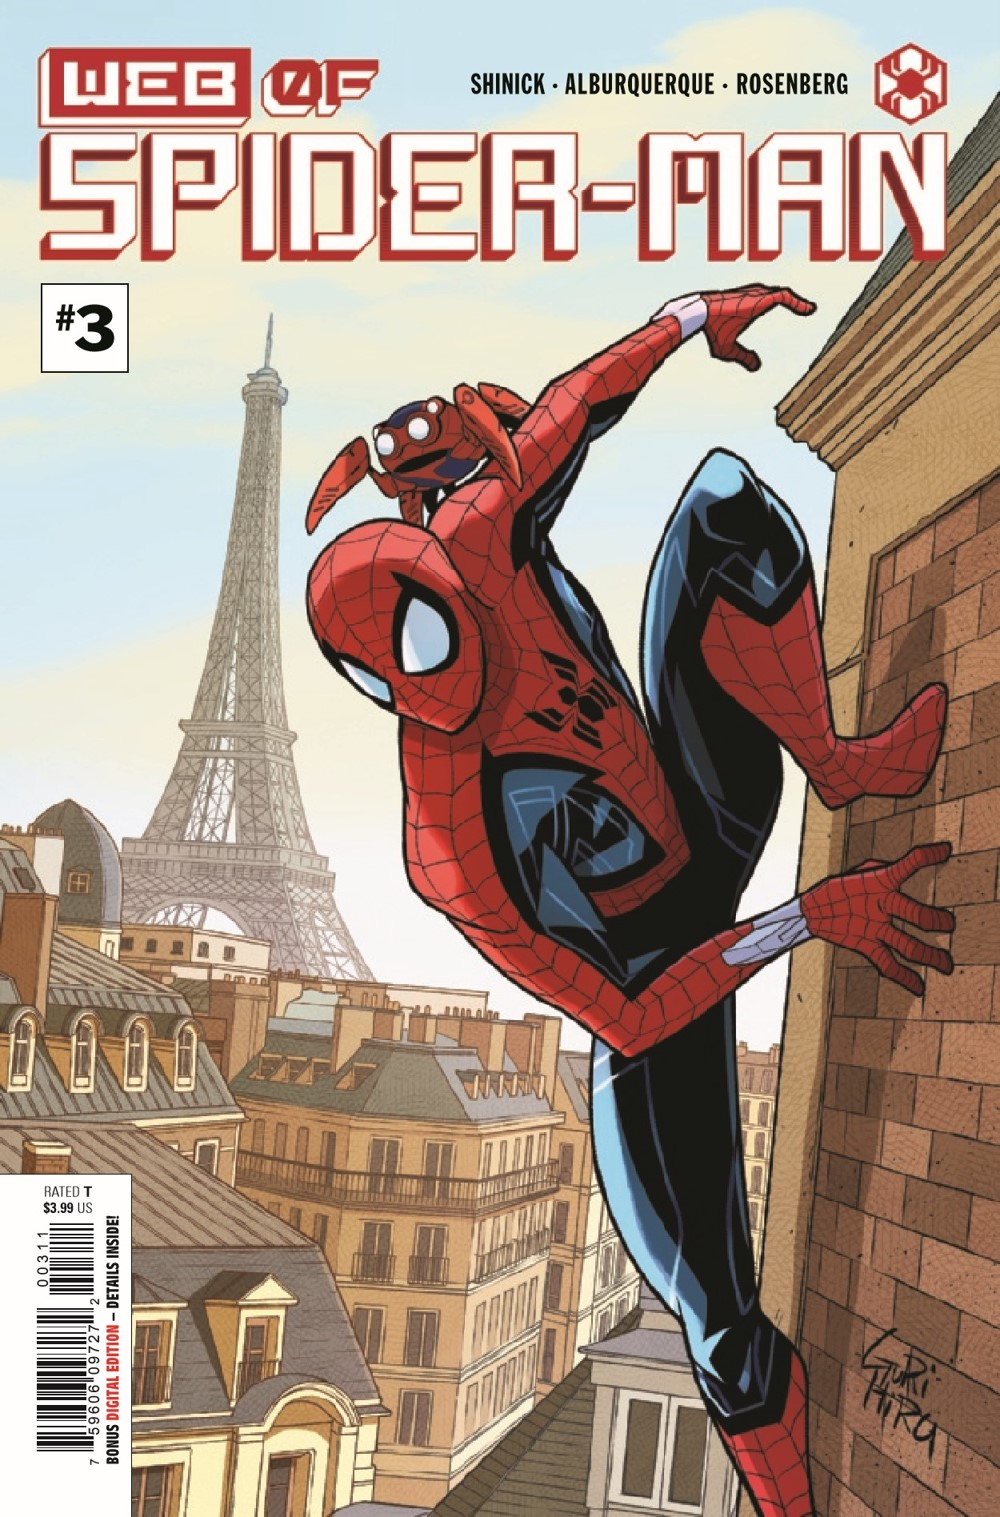 WEBOFSM2020003_Preview-1 ComicList Previews: W.E.B. OF SPIDER-MAN #3 (OF 5)